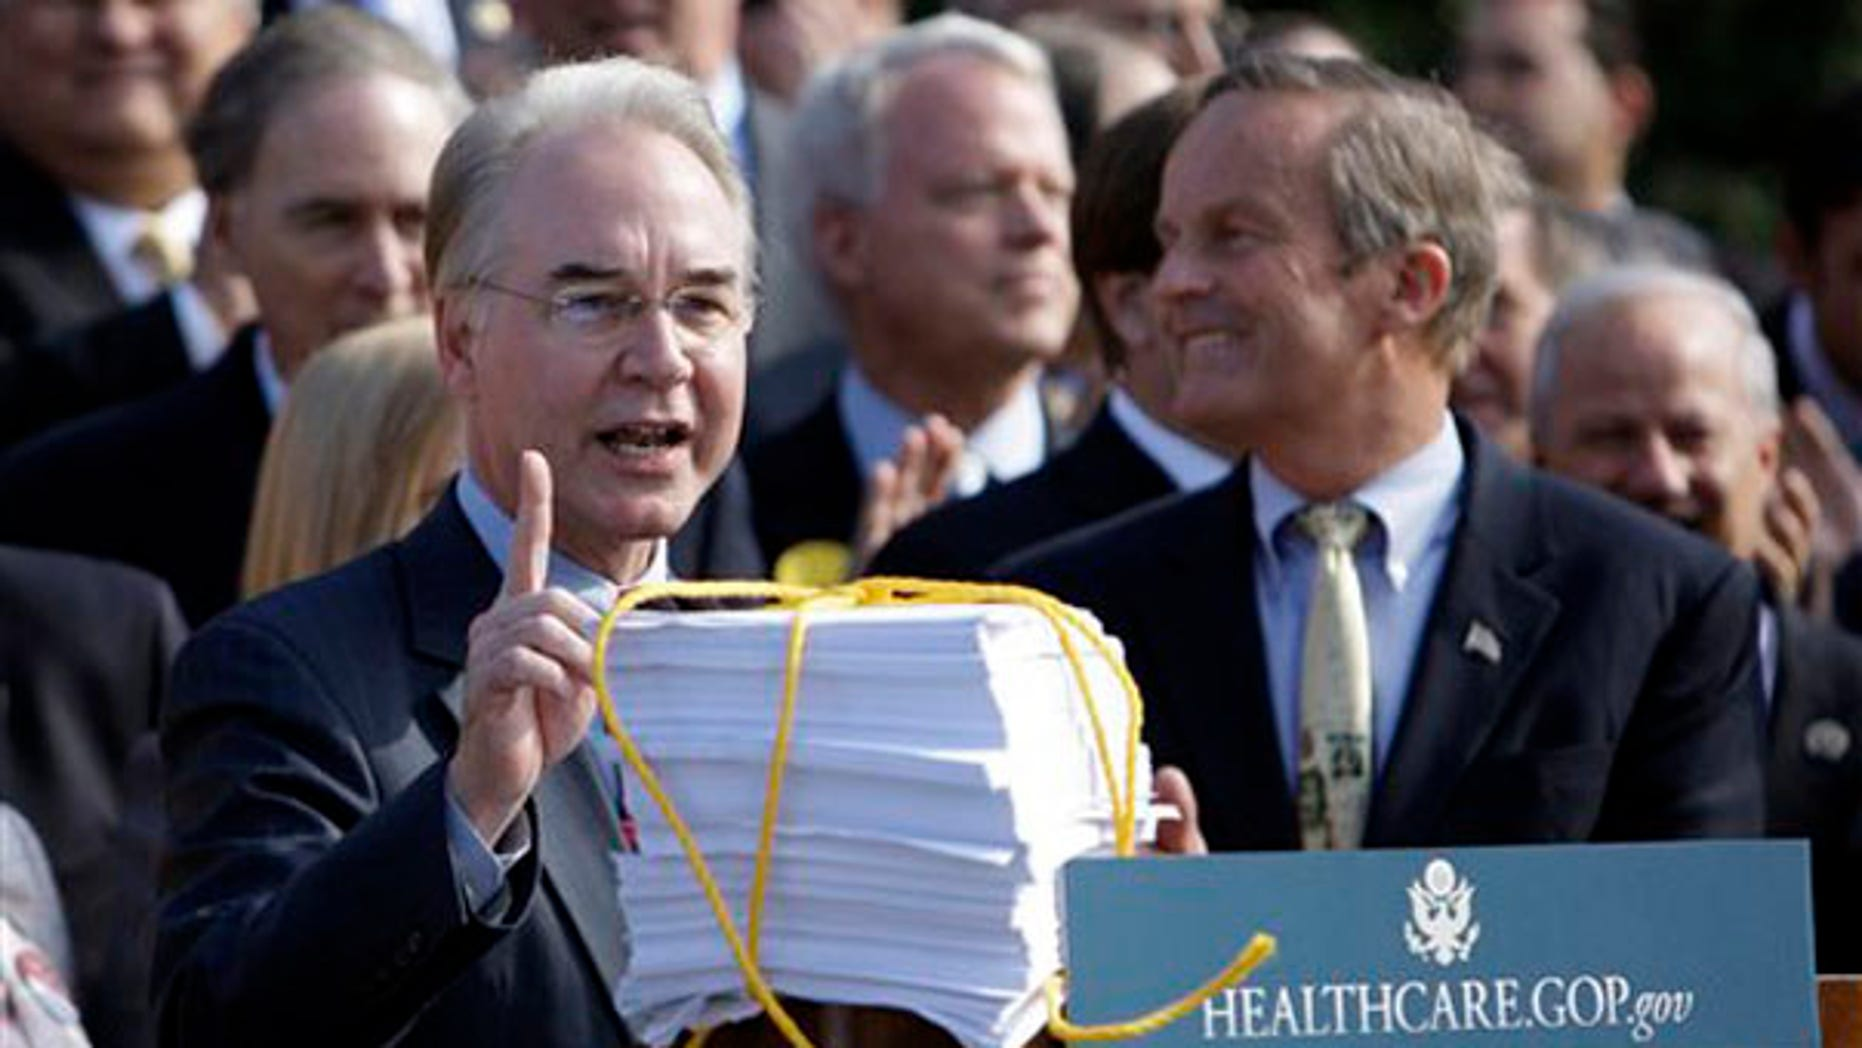 Rep. Tom Price, R-Ga., left, and others, attend a Republican news conference on health care Nov. 5. (AP Photo)